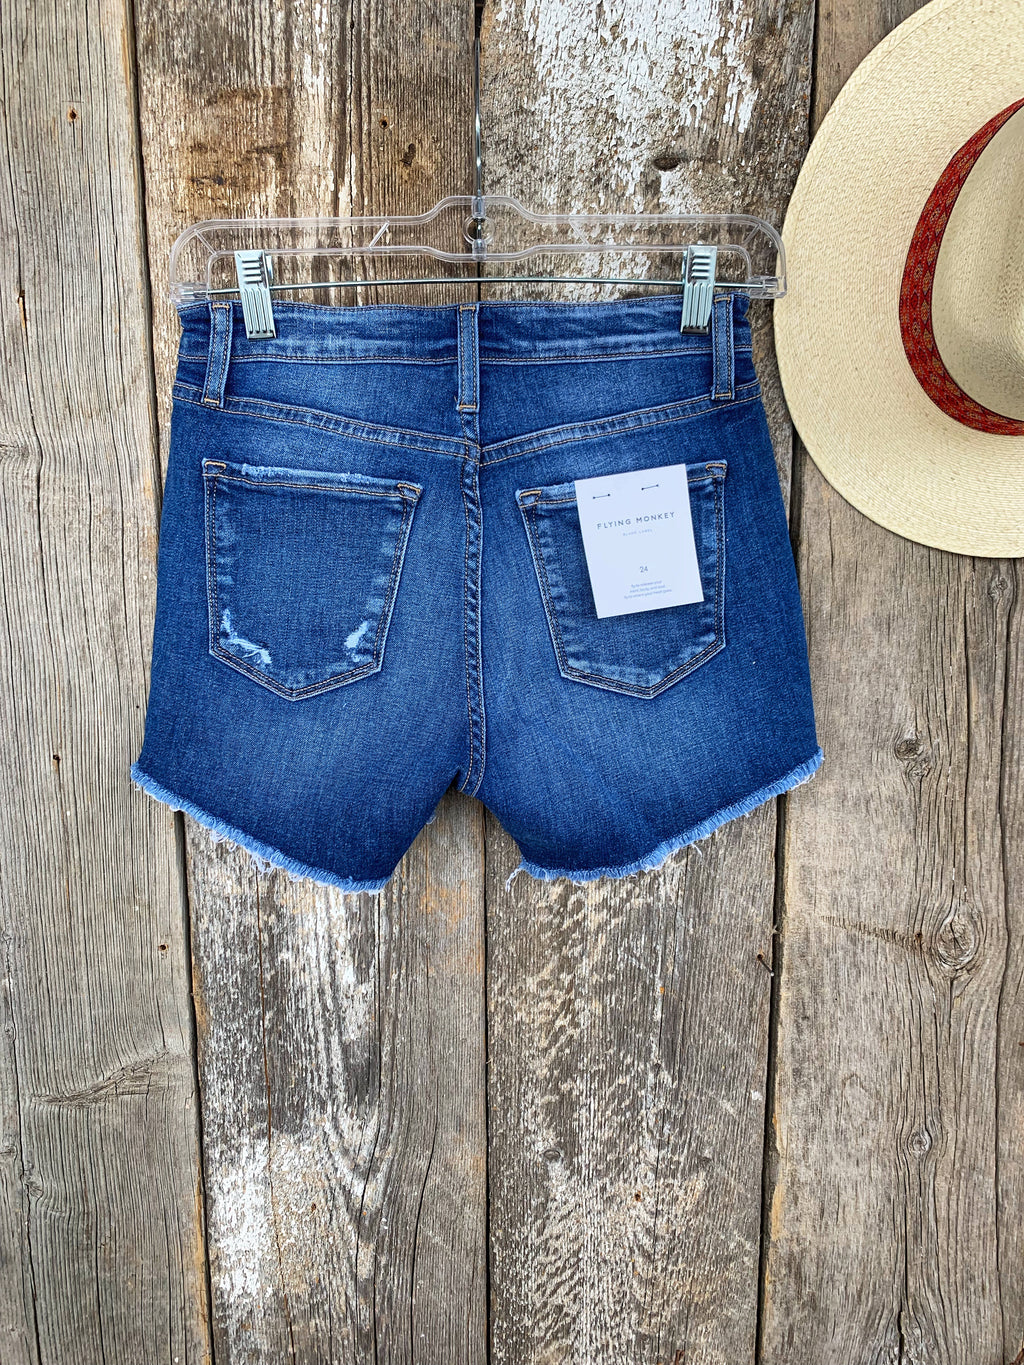 The County Fair: Denim Shorts